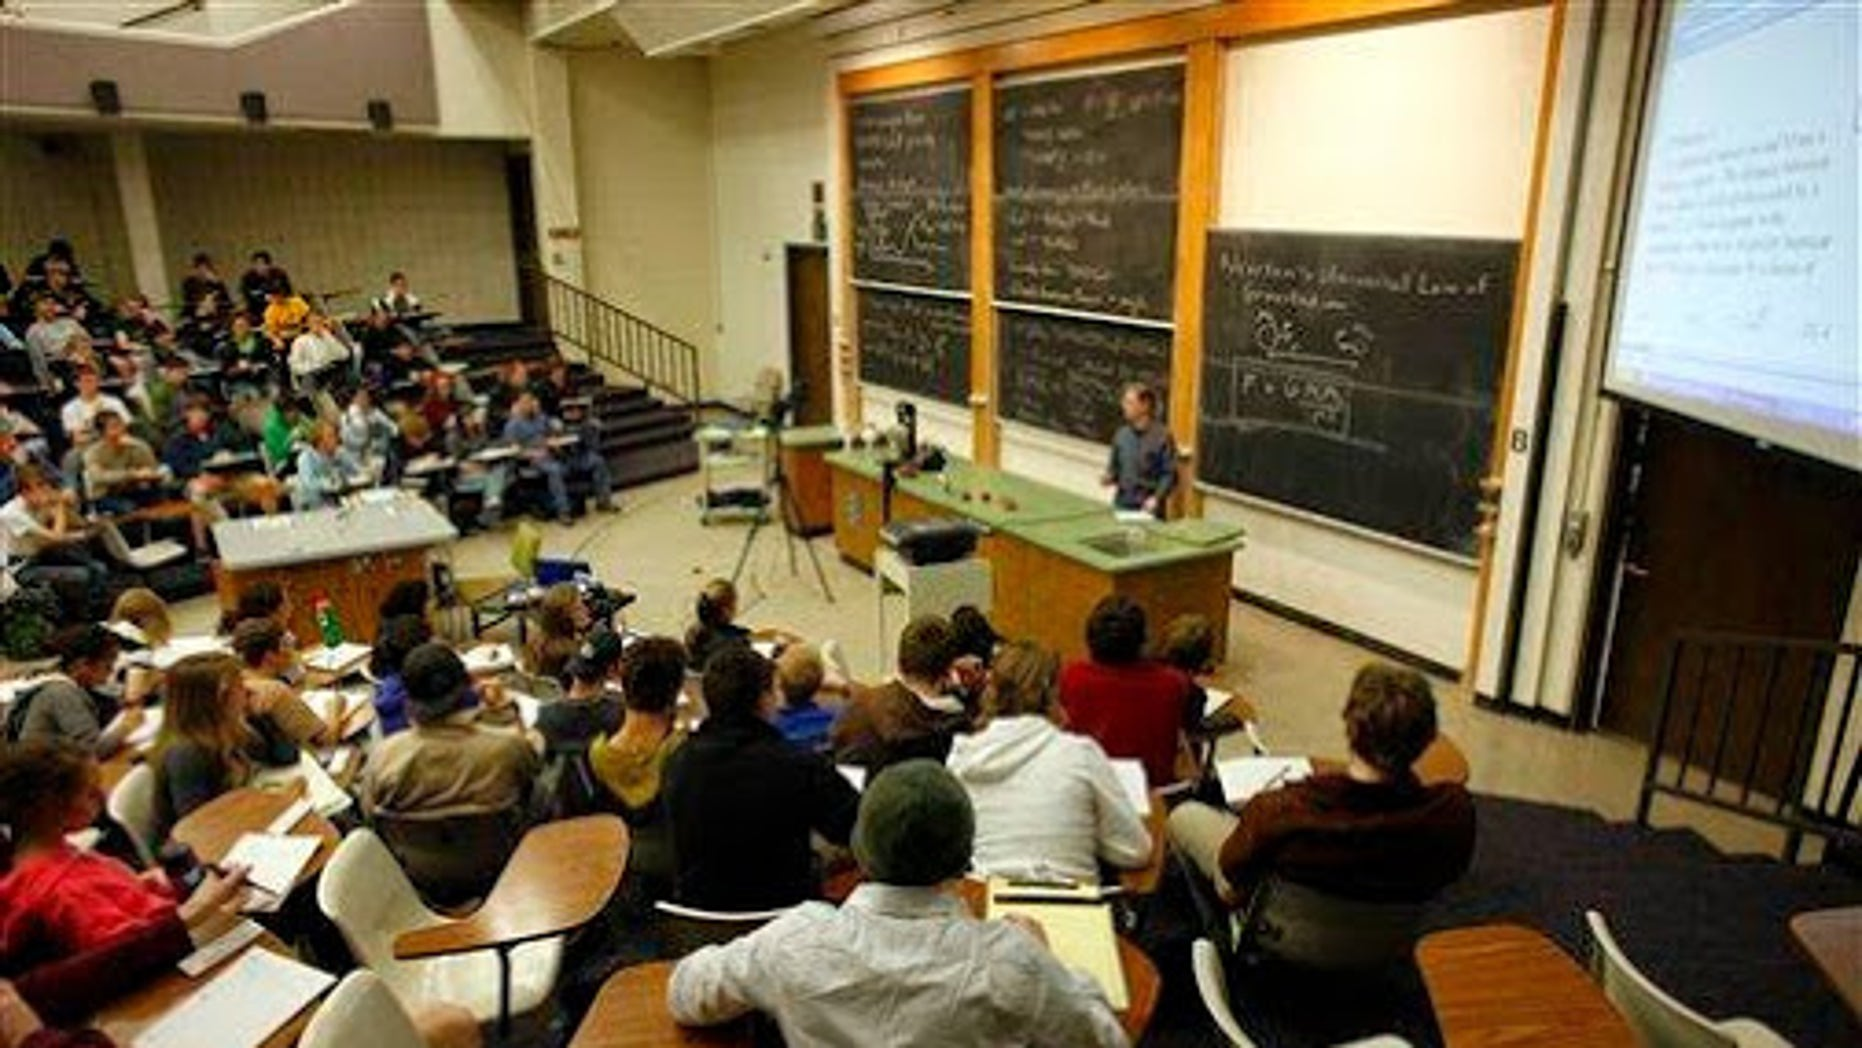 Do our colleges and universities have too many support groups?